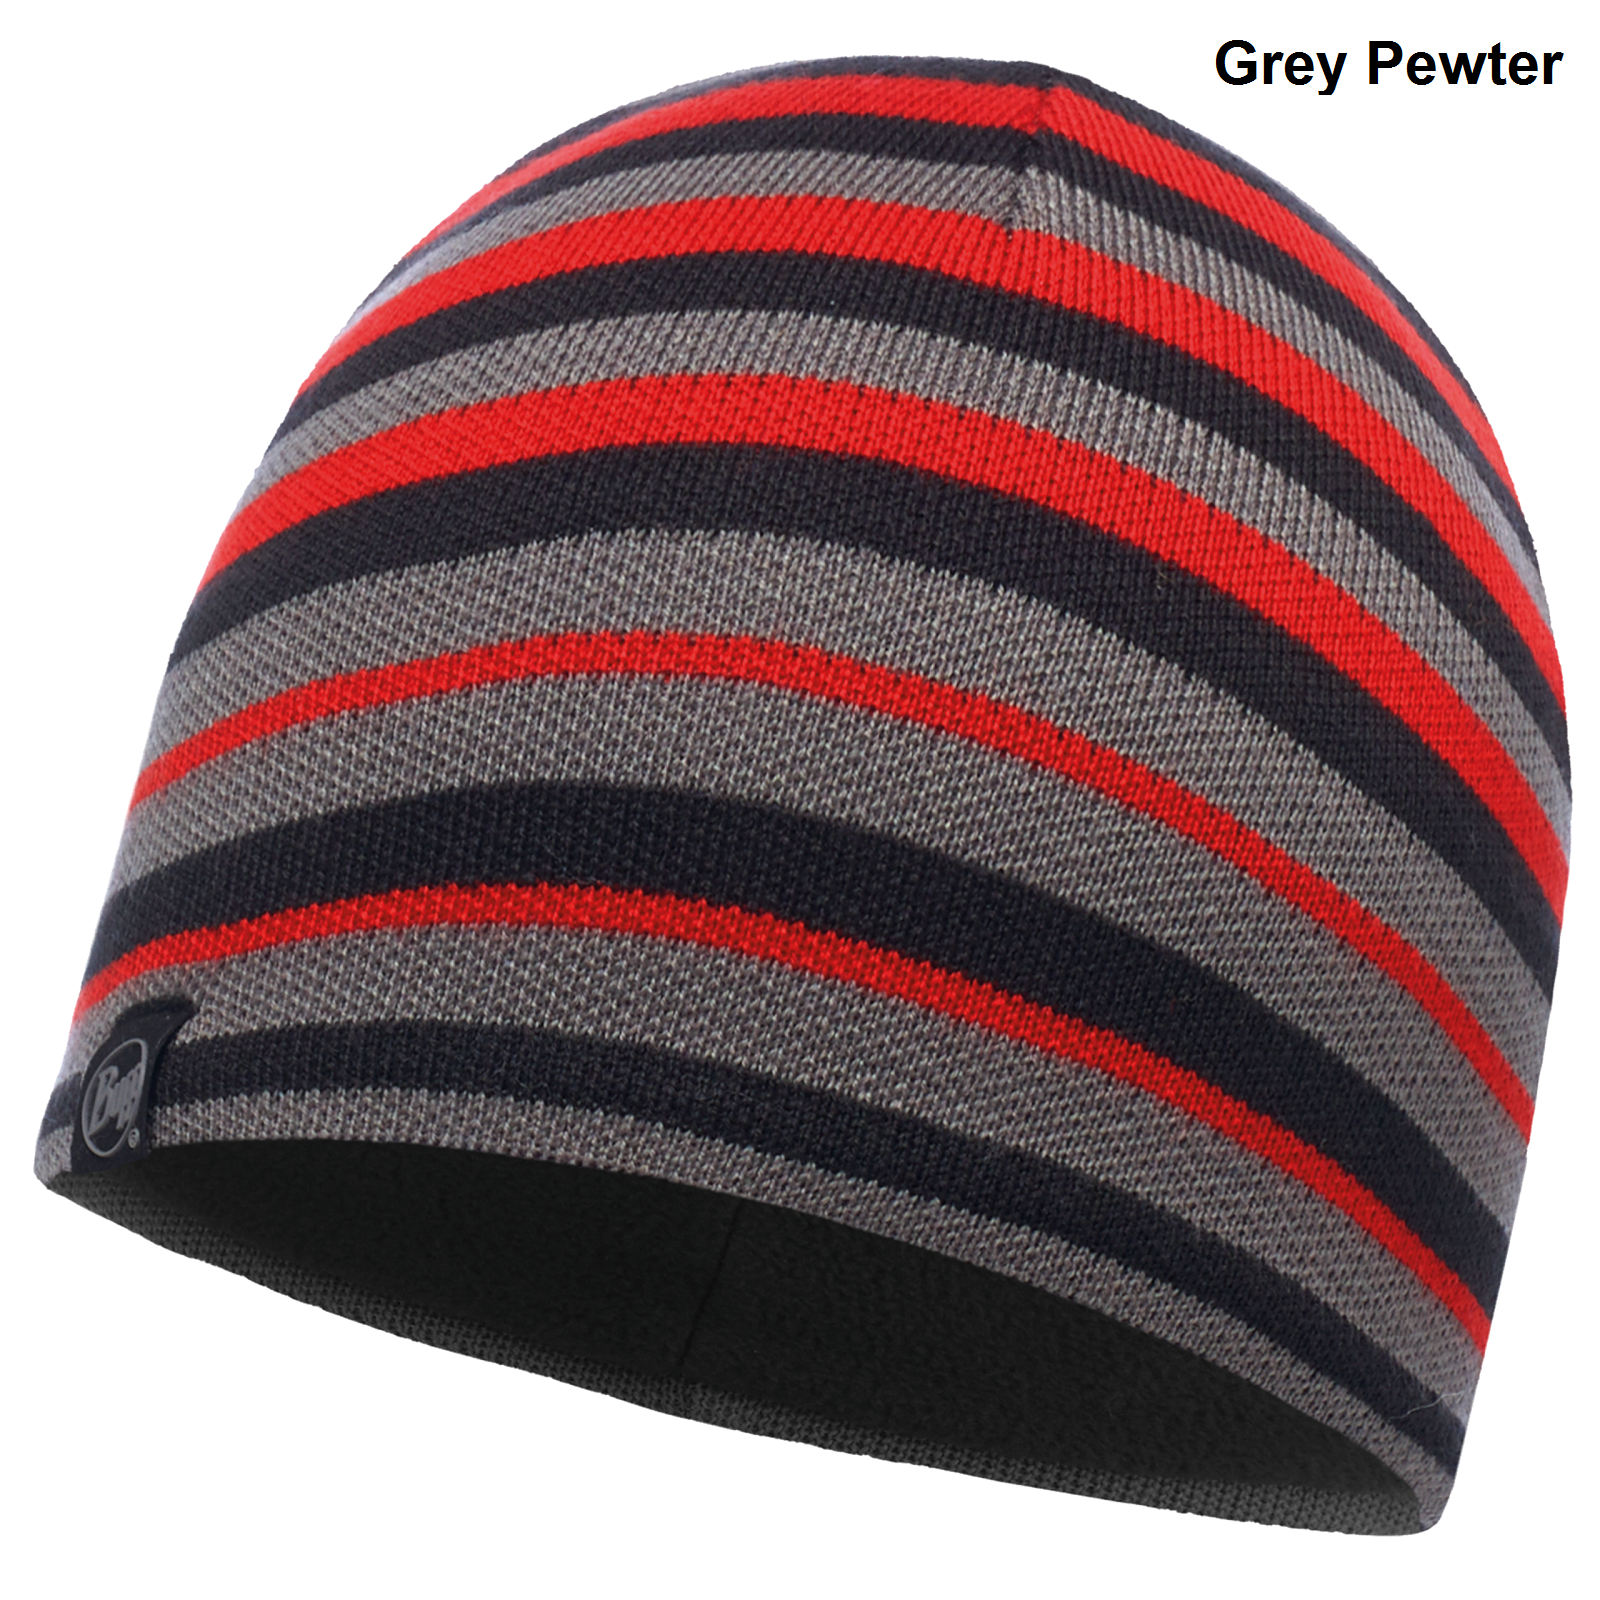 7c60872a4 Buff Unisex Laki Stripes Knitted Hat - Fleece Band - One Size